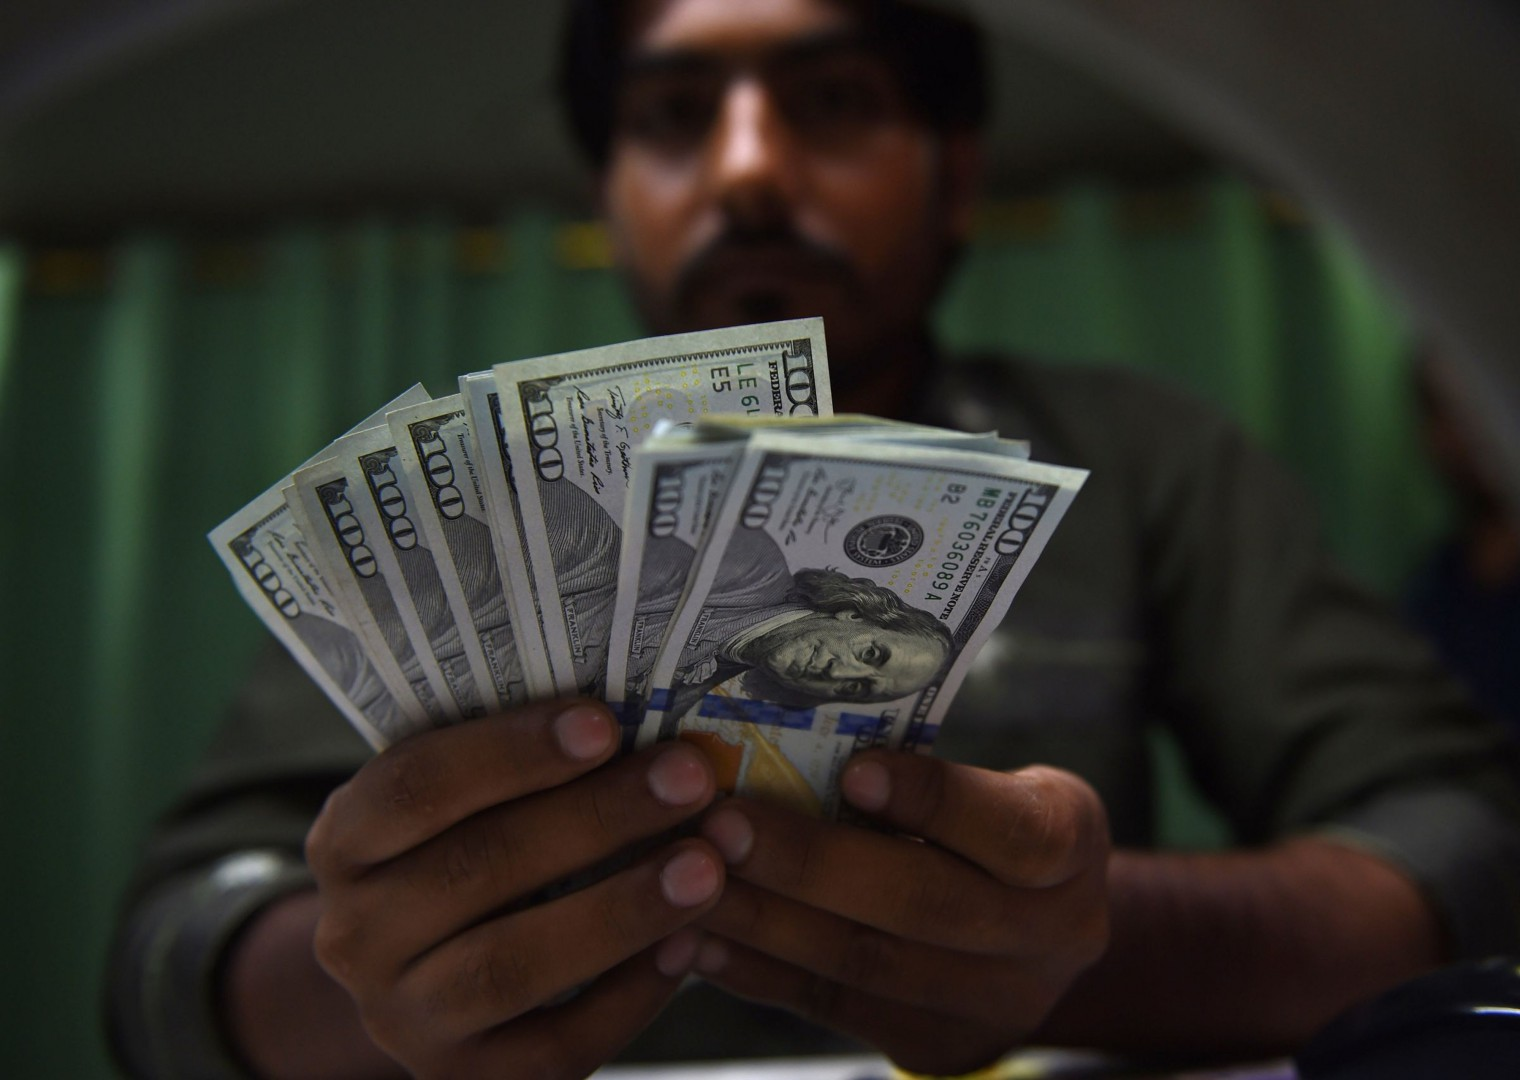 This photo taken on July 17, 2018 shows a Pakistani currency dealer counting US dollars banknotes at a currency exchange shop in Karachi. Pakistan's next government faces growing fears of a balance of payments crisis, with speculation mounting it will have to seek its second IMF bailout in five years. The central bank is burning through foreign reserves and devaluing the rupee, including another five-percent dive this week, in a bid to bridge a widening trade deficit. / AFP PHOTO / RIZWAN TABASSUM / TO GO WITH Pakistan-election,POINTS